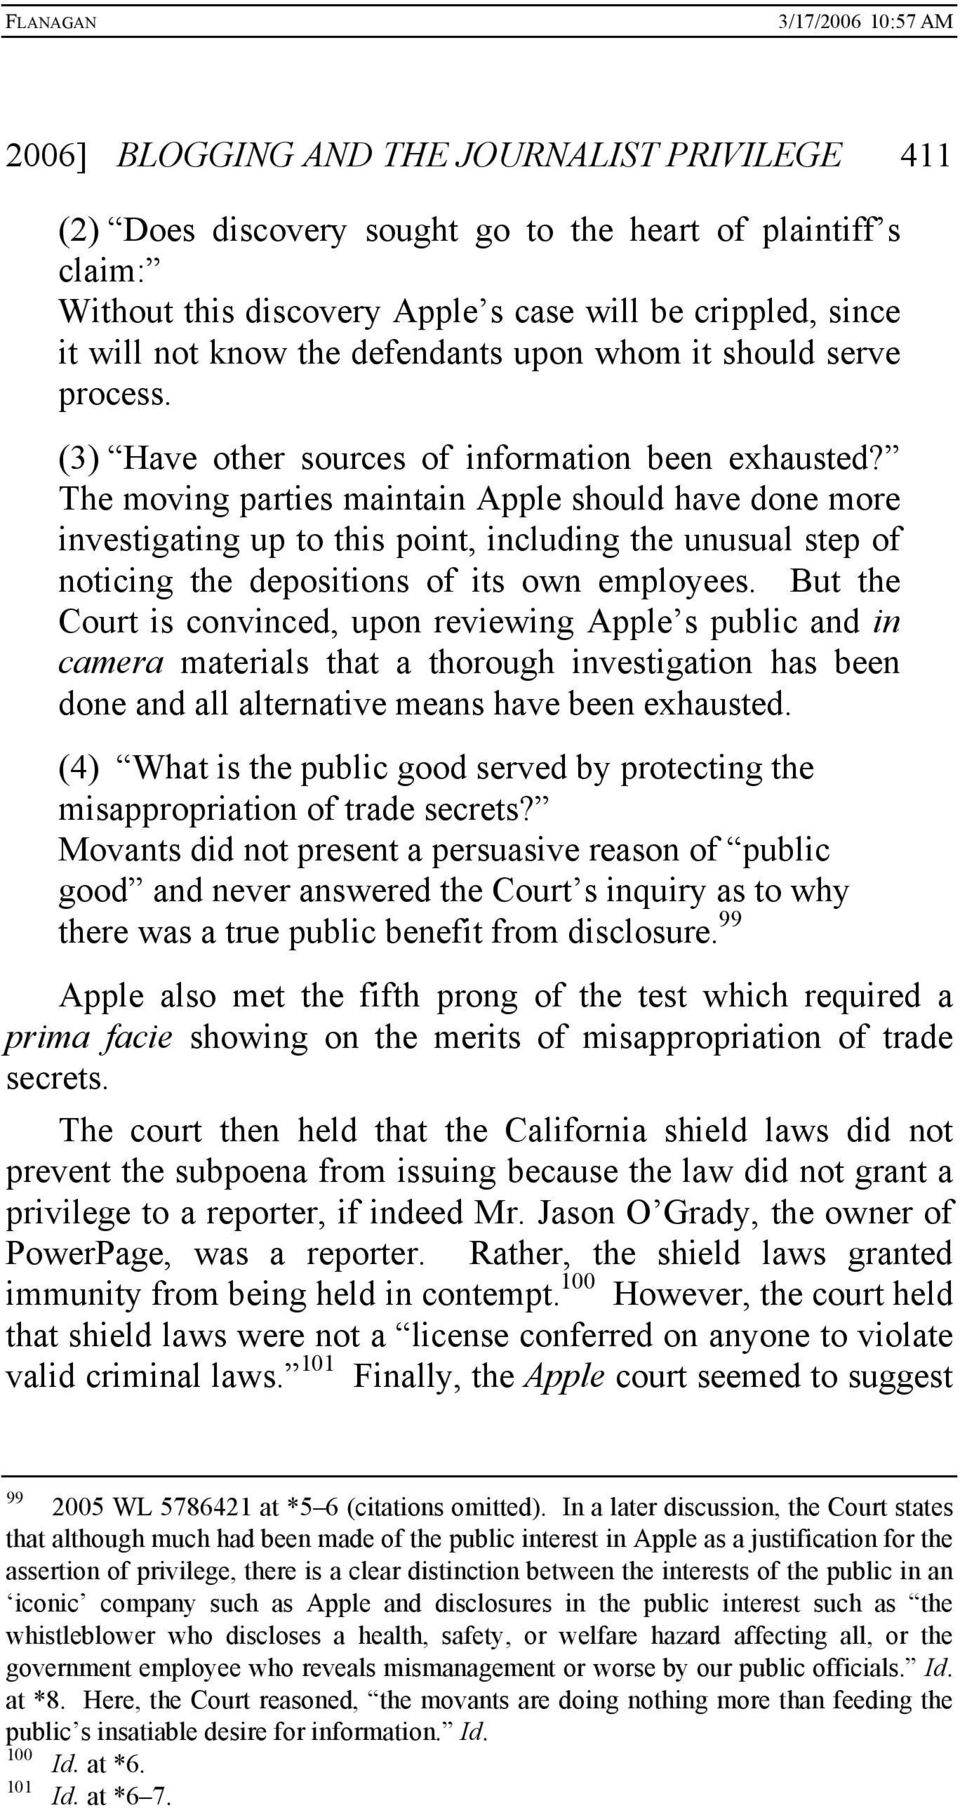 The moving parties maintain Apple should have done more investigating up to this point, including the unusual step of noticing the depositions of its own employees.